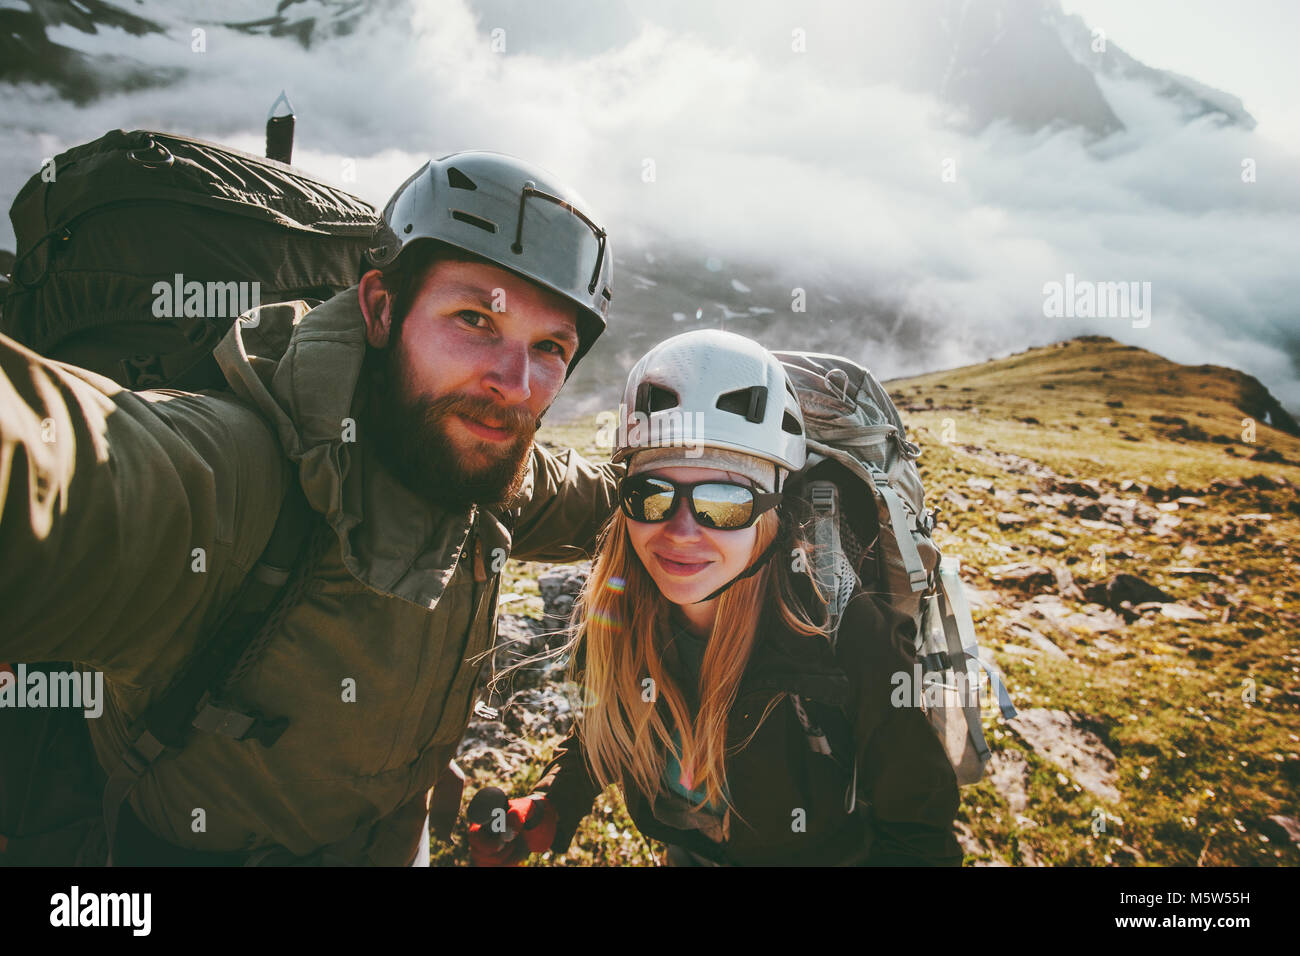 Couple travel selfie man and woman hiking in mountains love and adventure Lifestyle wanderlust concept - Stock Image